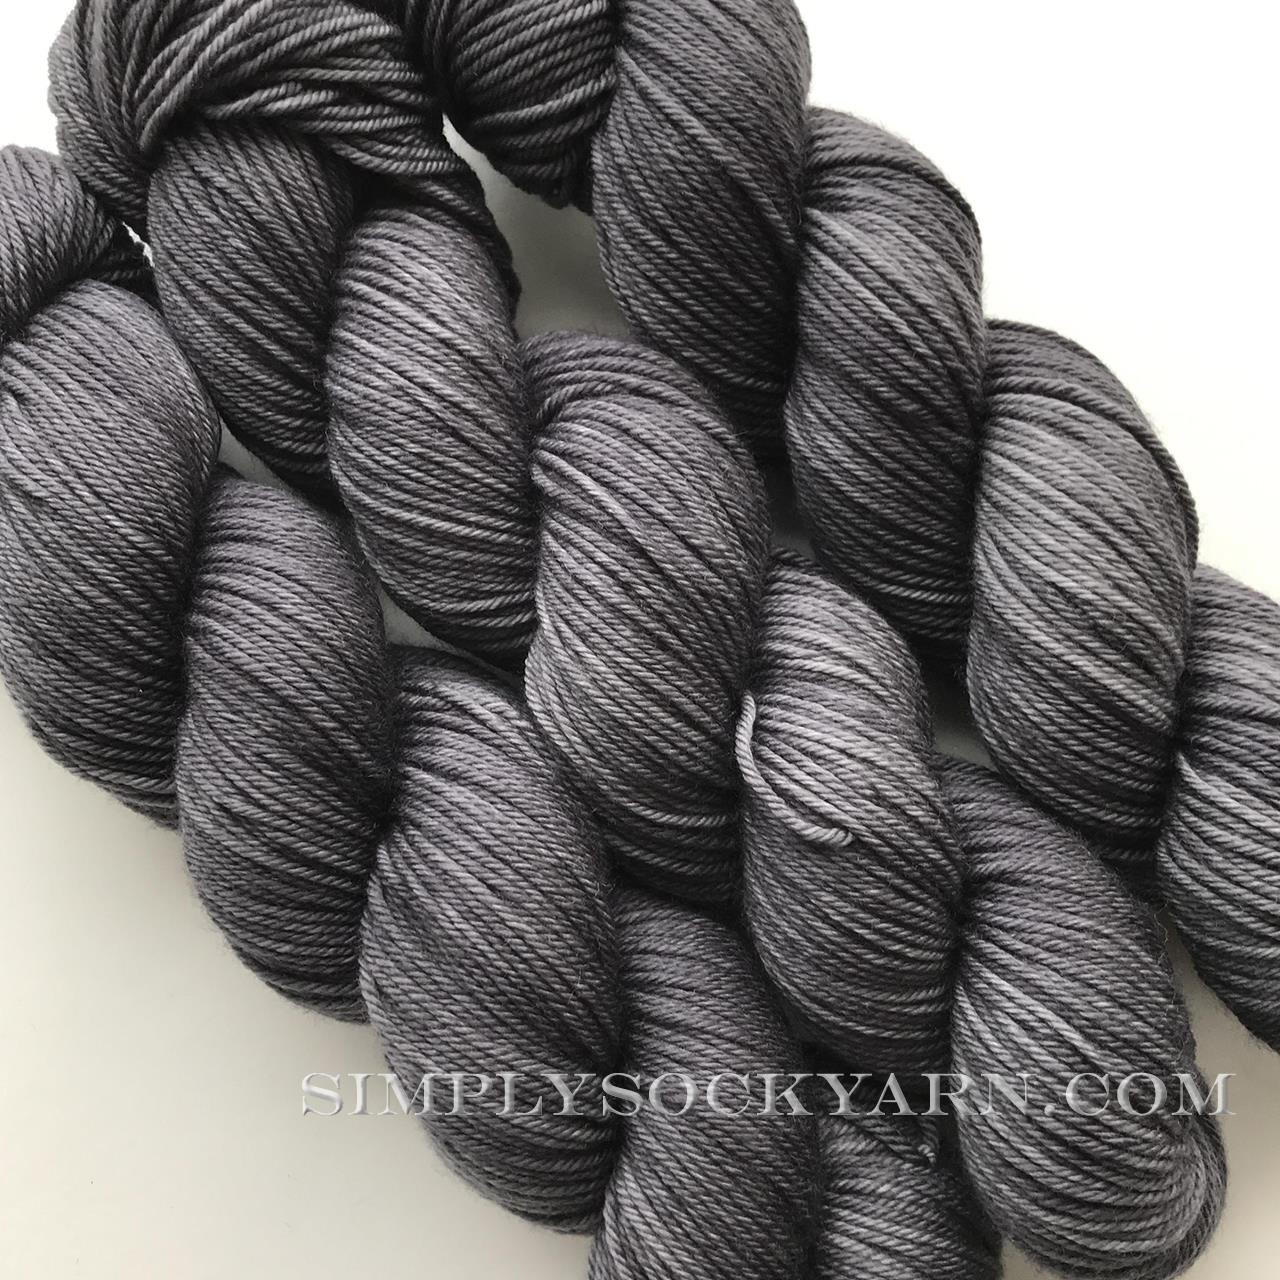 SRR Squish DK Reapers Rags -